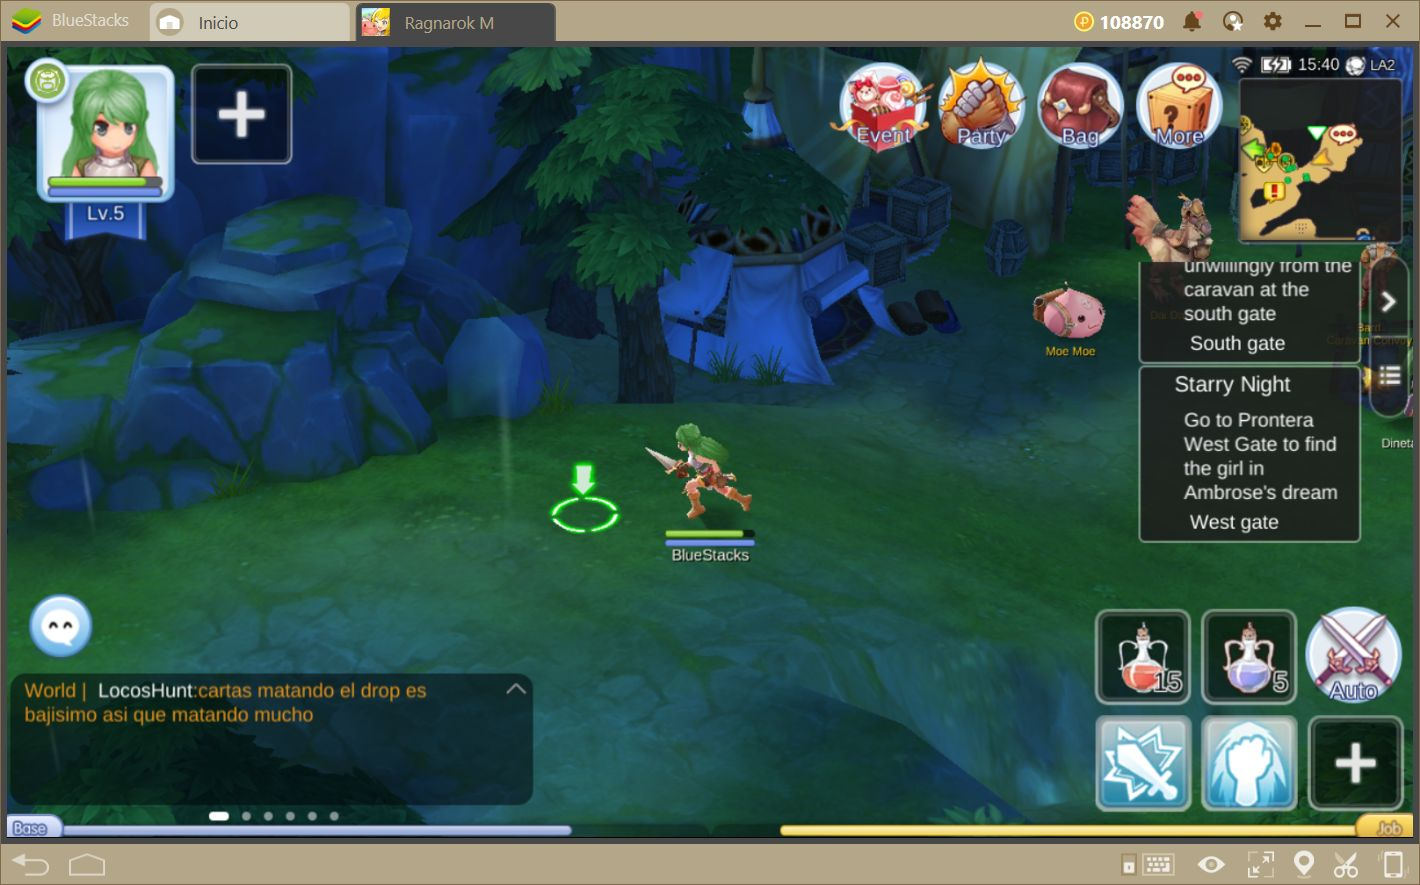 Ragnarok M: Eternal Love—¡Redescubre Rune-Midgard Con BlueStacks!